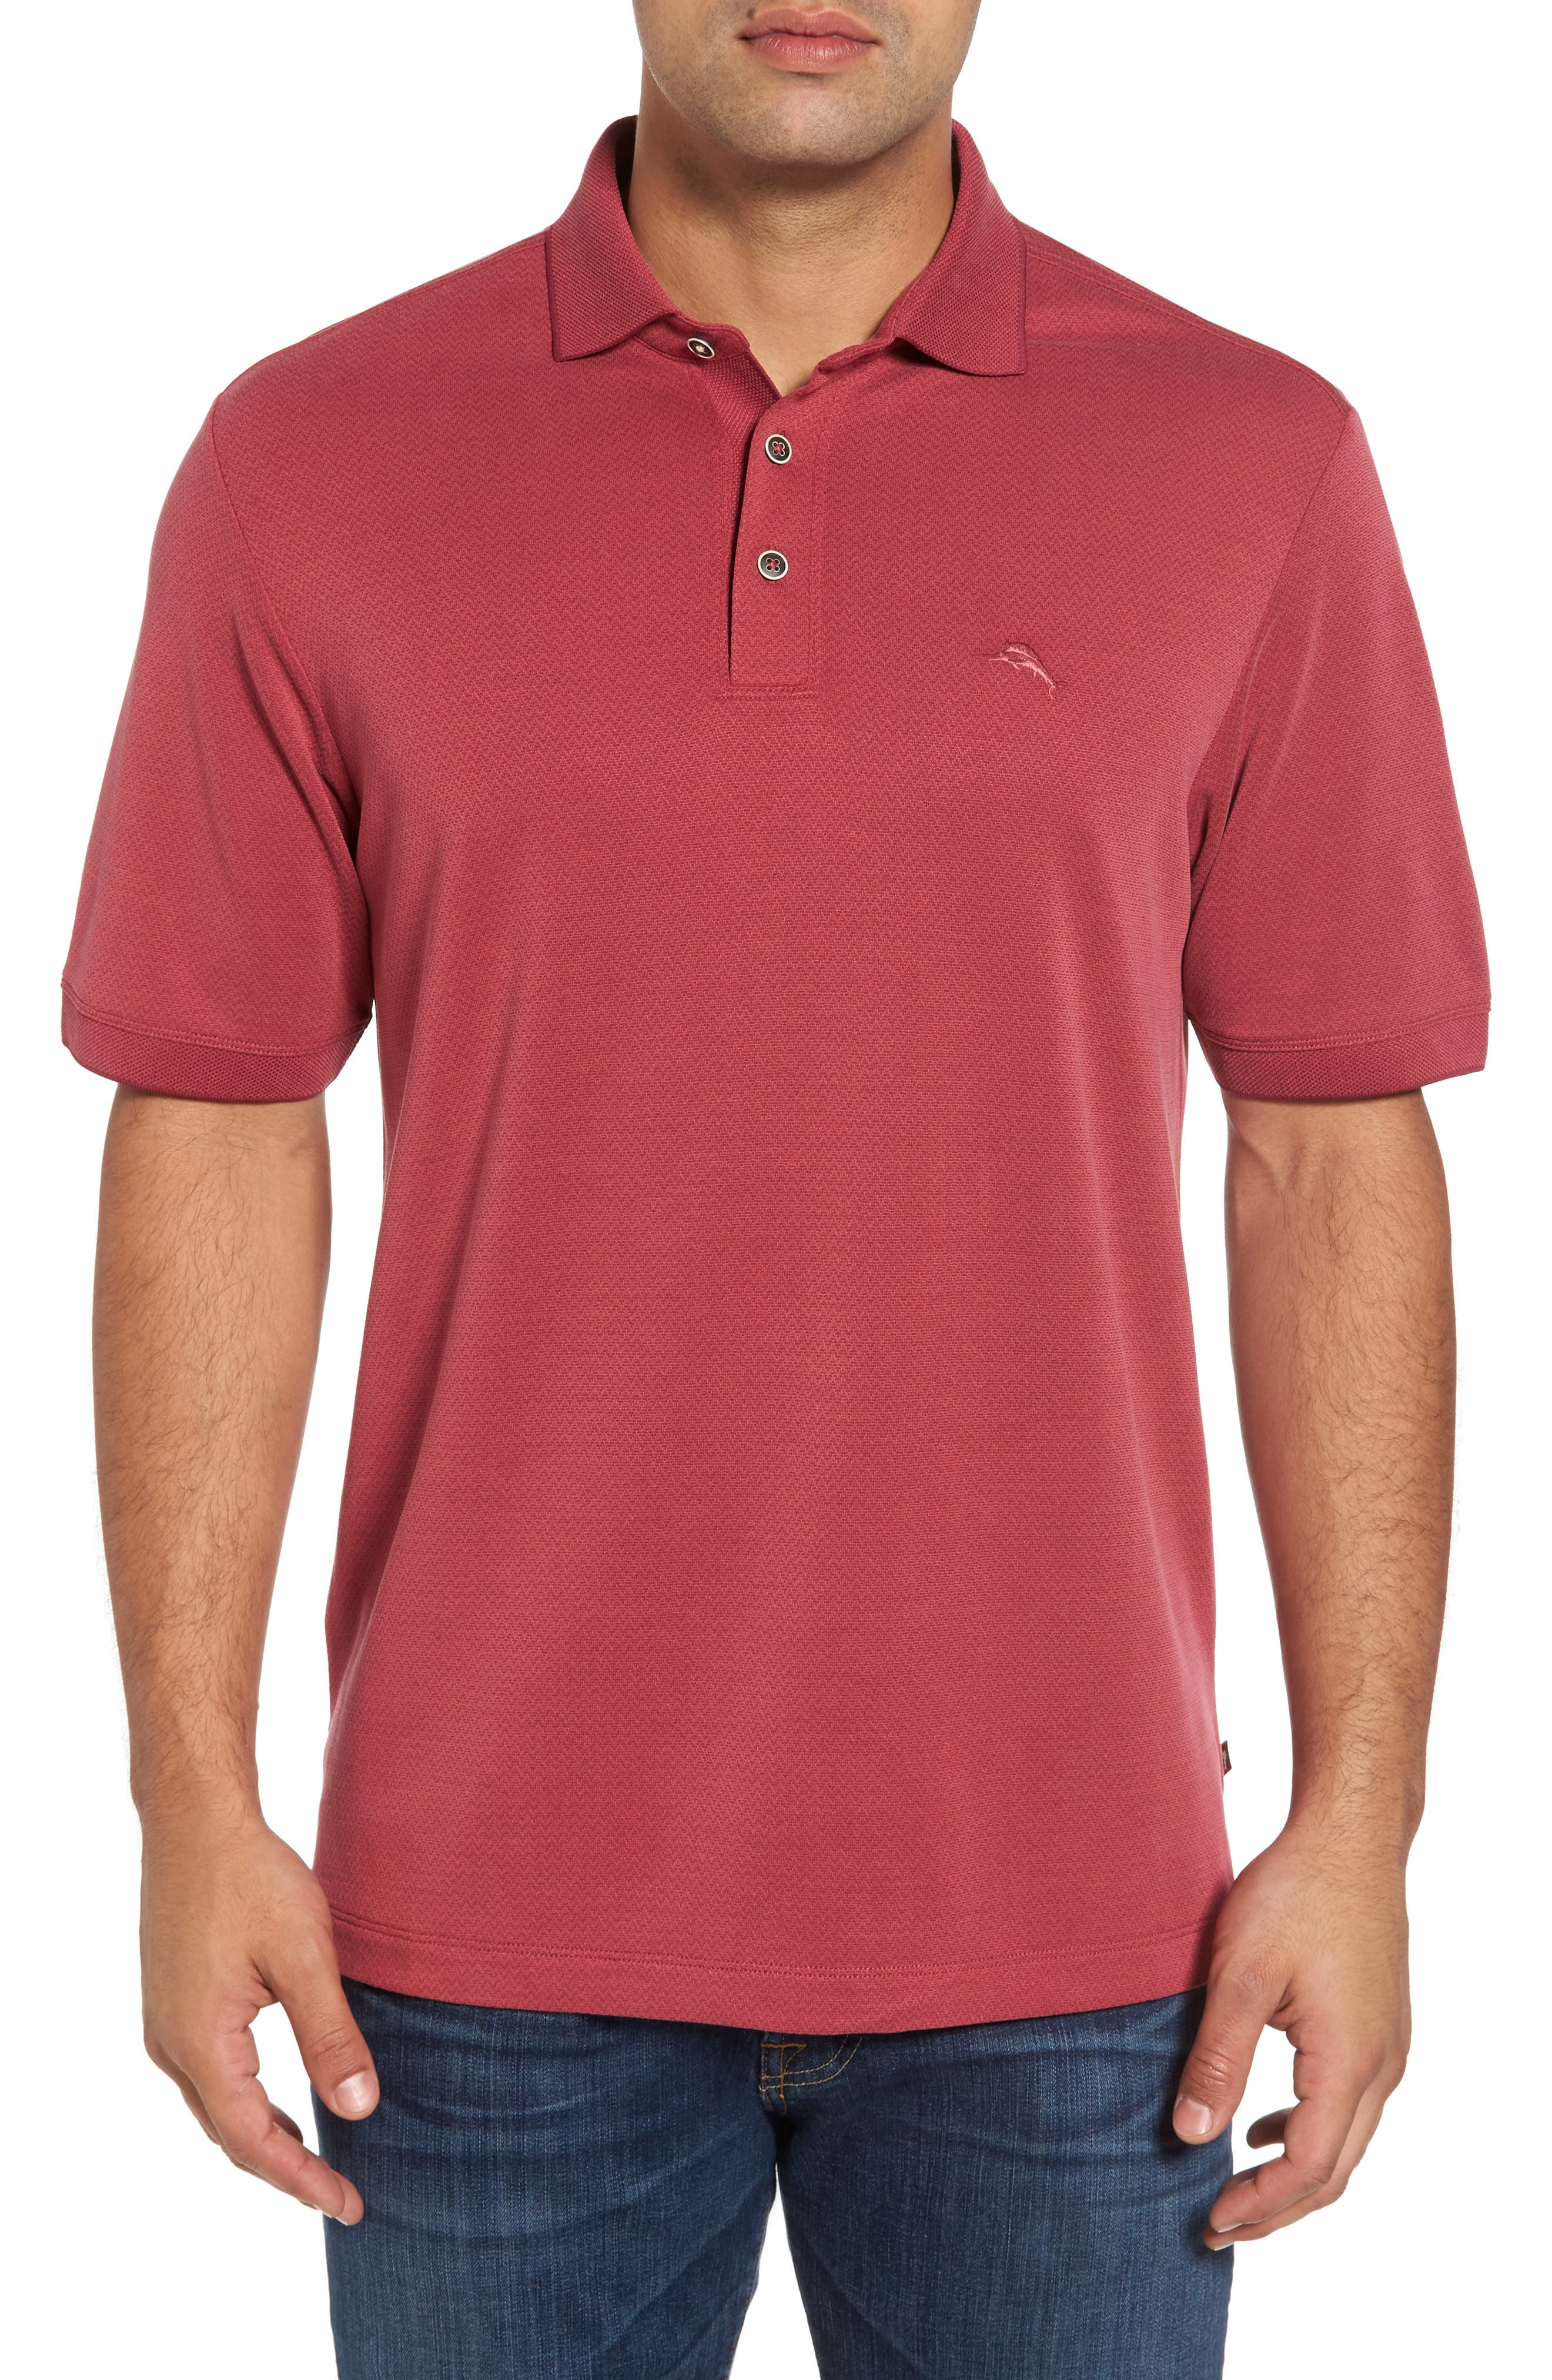 Ocean View Short Sleeve Jacquard Polo,                         Main,                         color, Beet Red